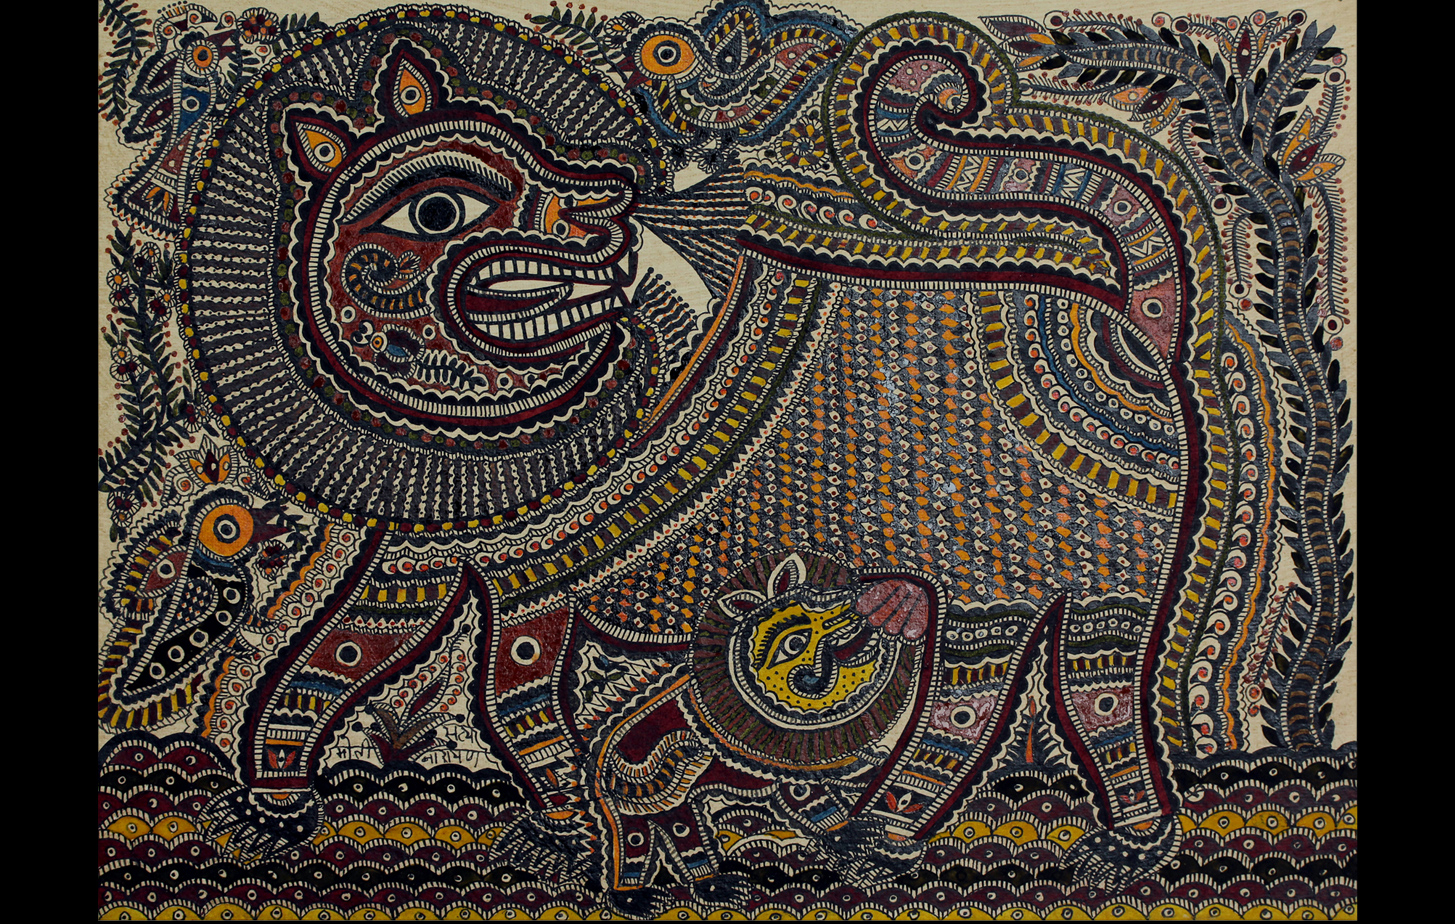 Mithila painting or Madhubani art depicting a lioness milking her cub, while three birds hover around.